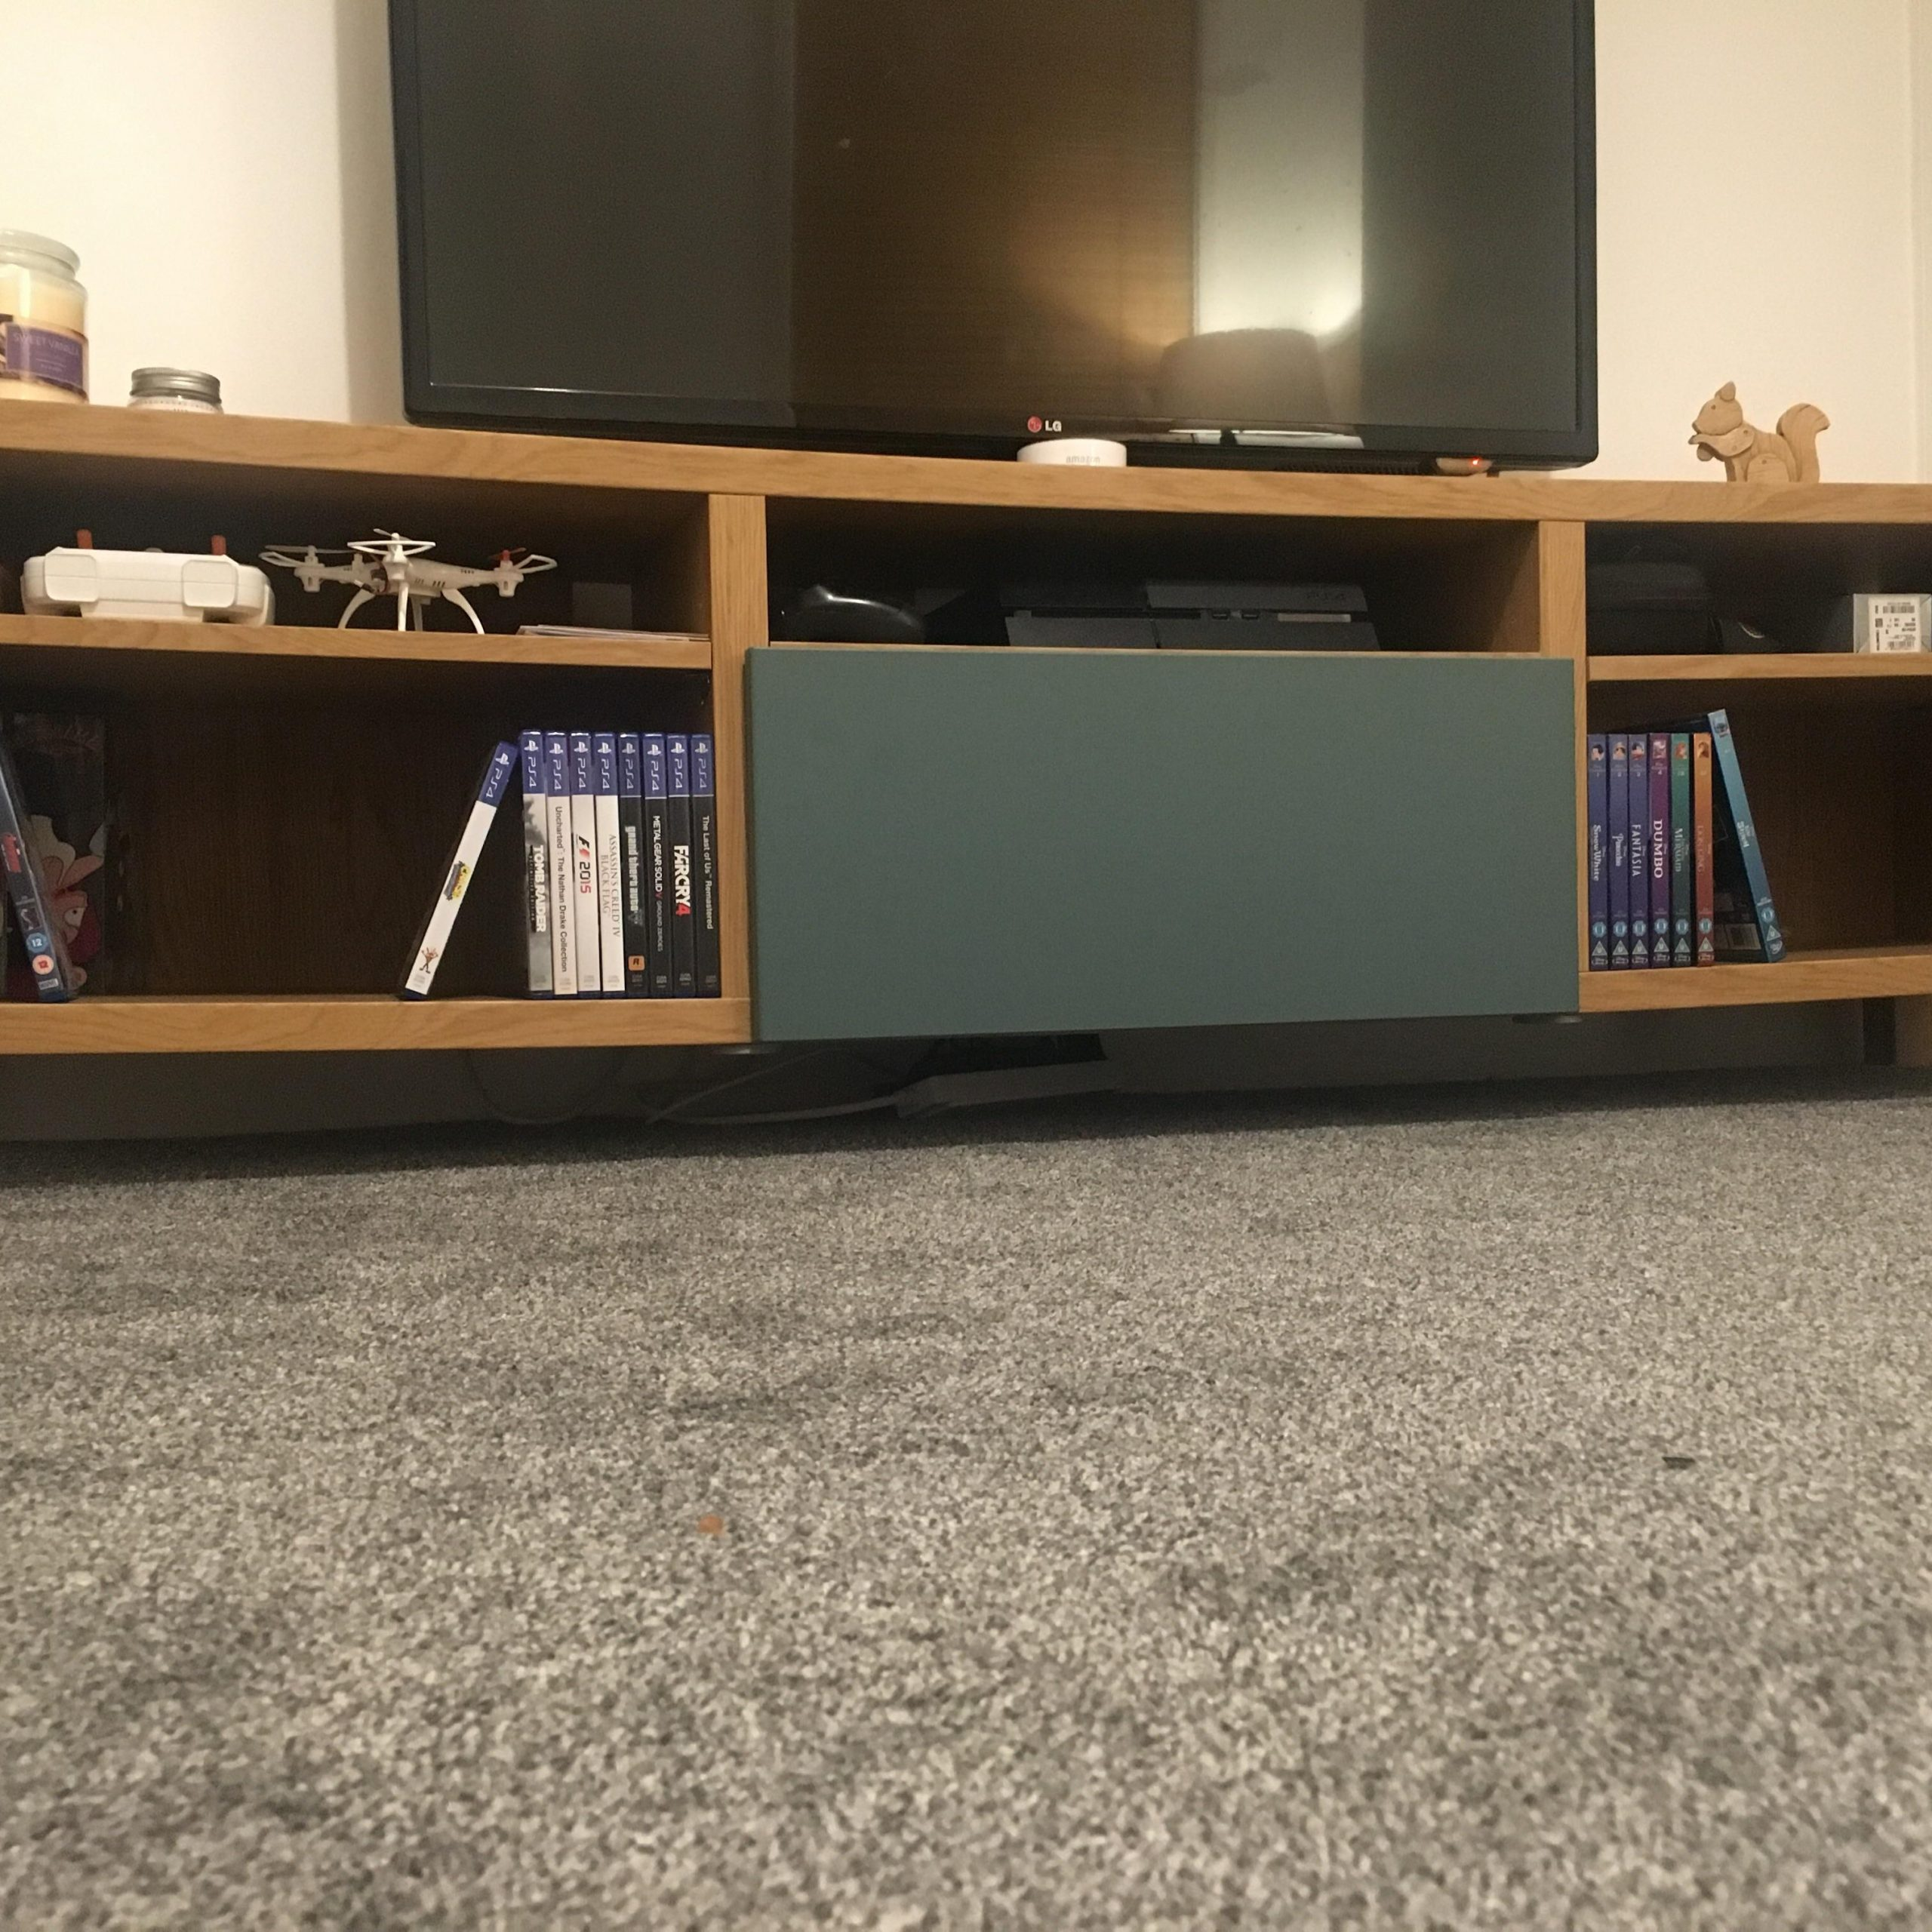 Ikea Besta Tv Stand Sagging In The Middle, Setup As Seen For Tv Stands At Ikea (View 5 of 15)